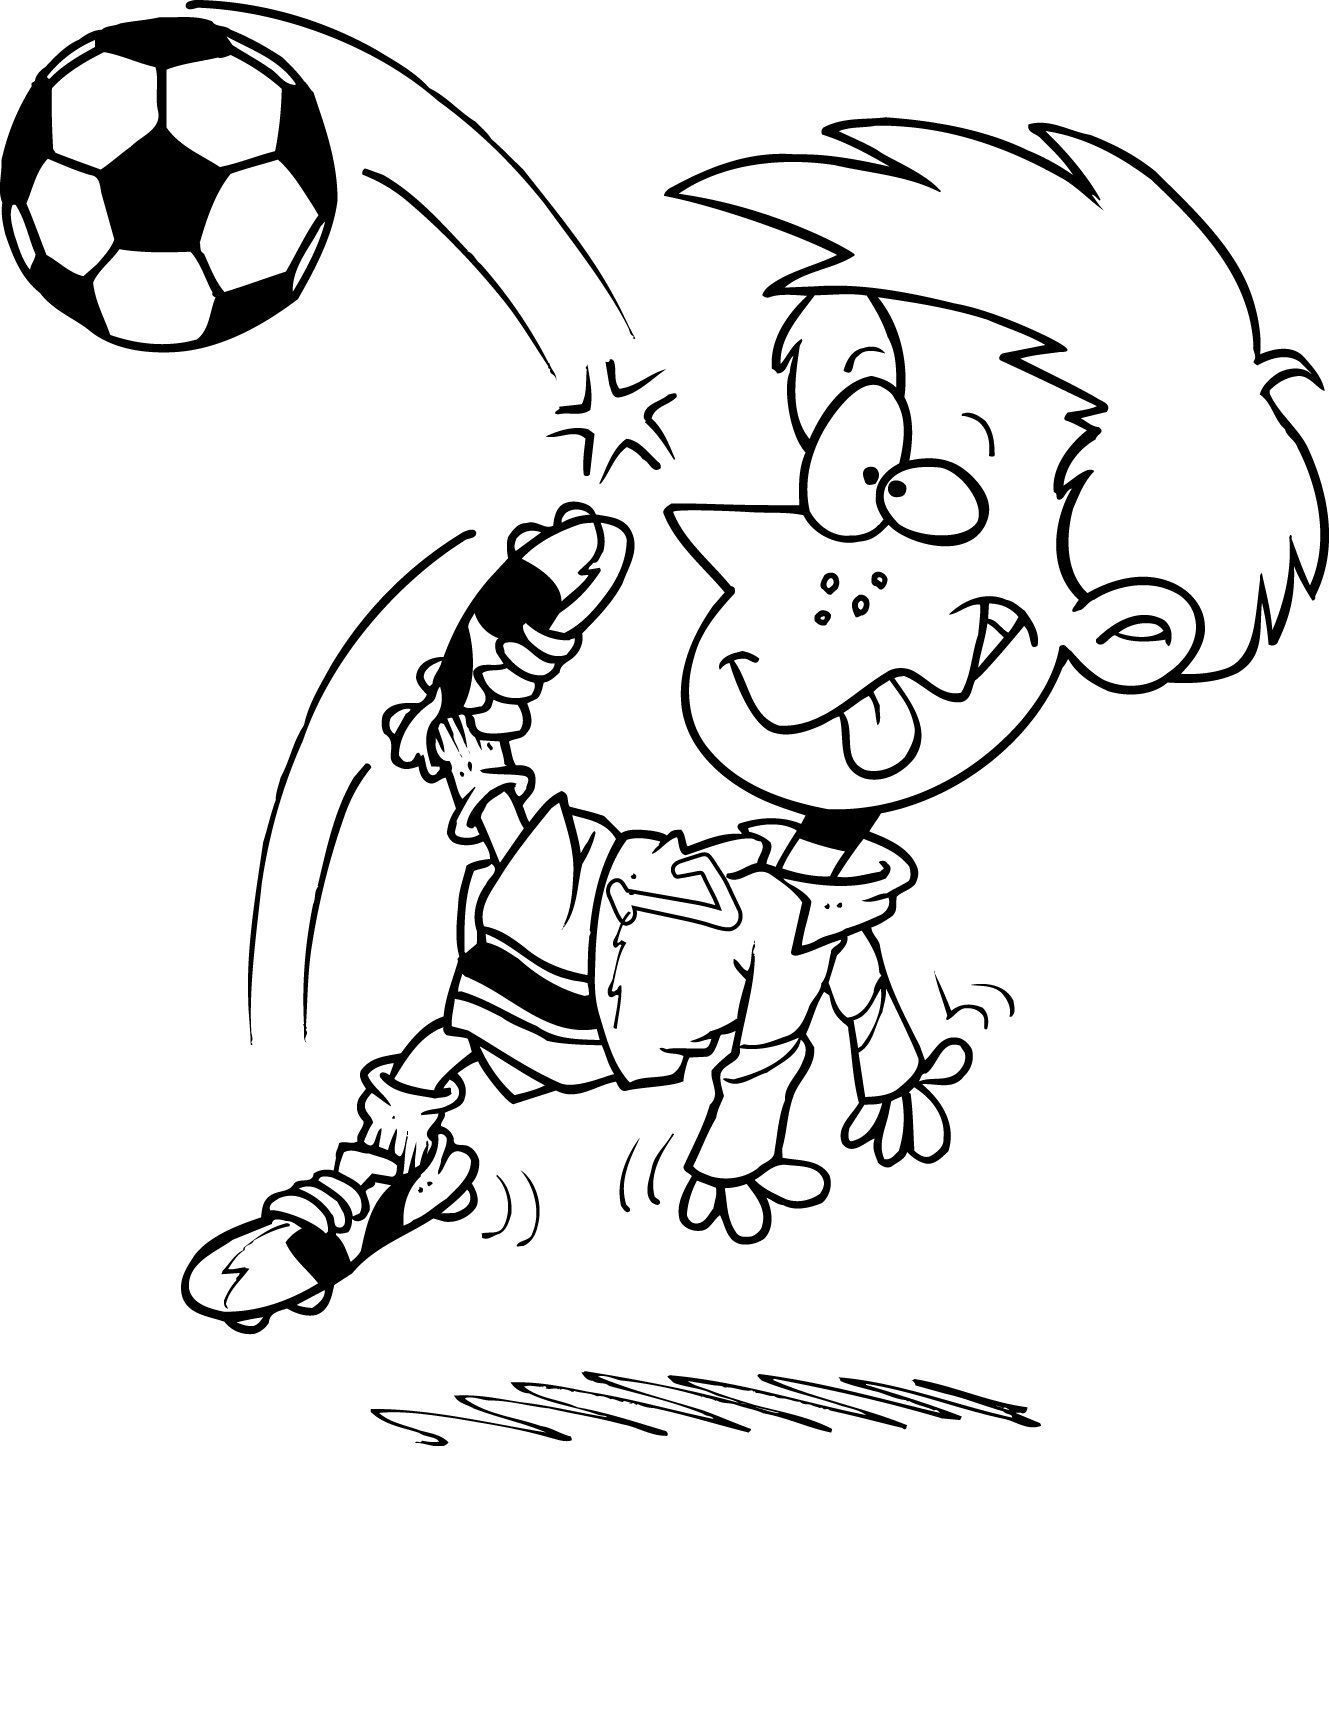 free printable soccer coloring pages for kids coloring_pages pinterest free printable - Free Printable Soccer Coloring Pages